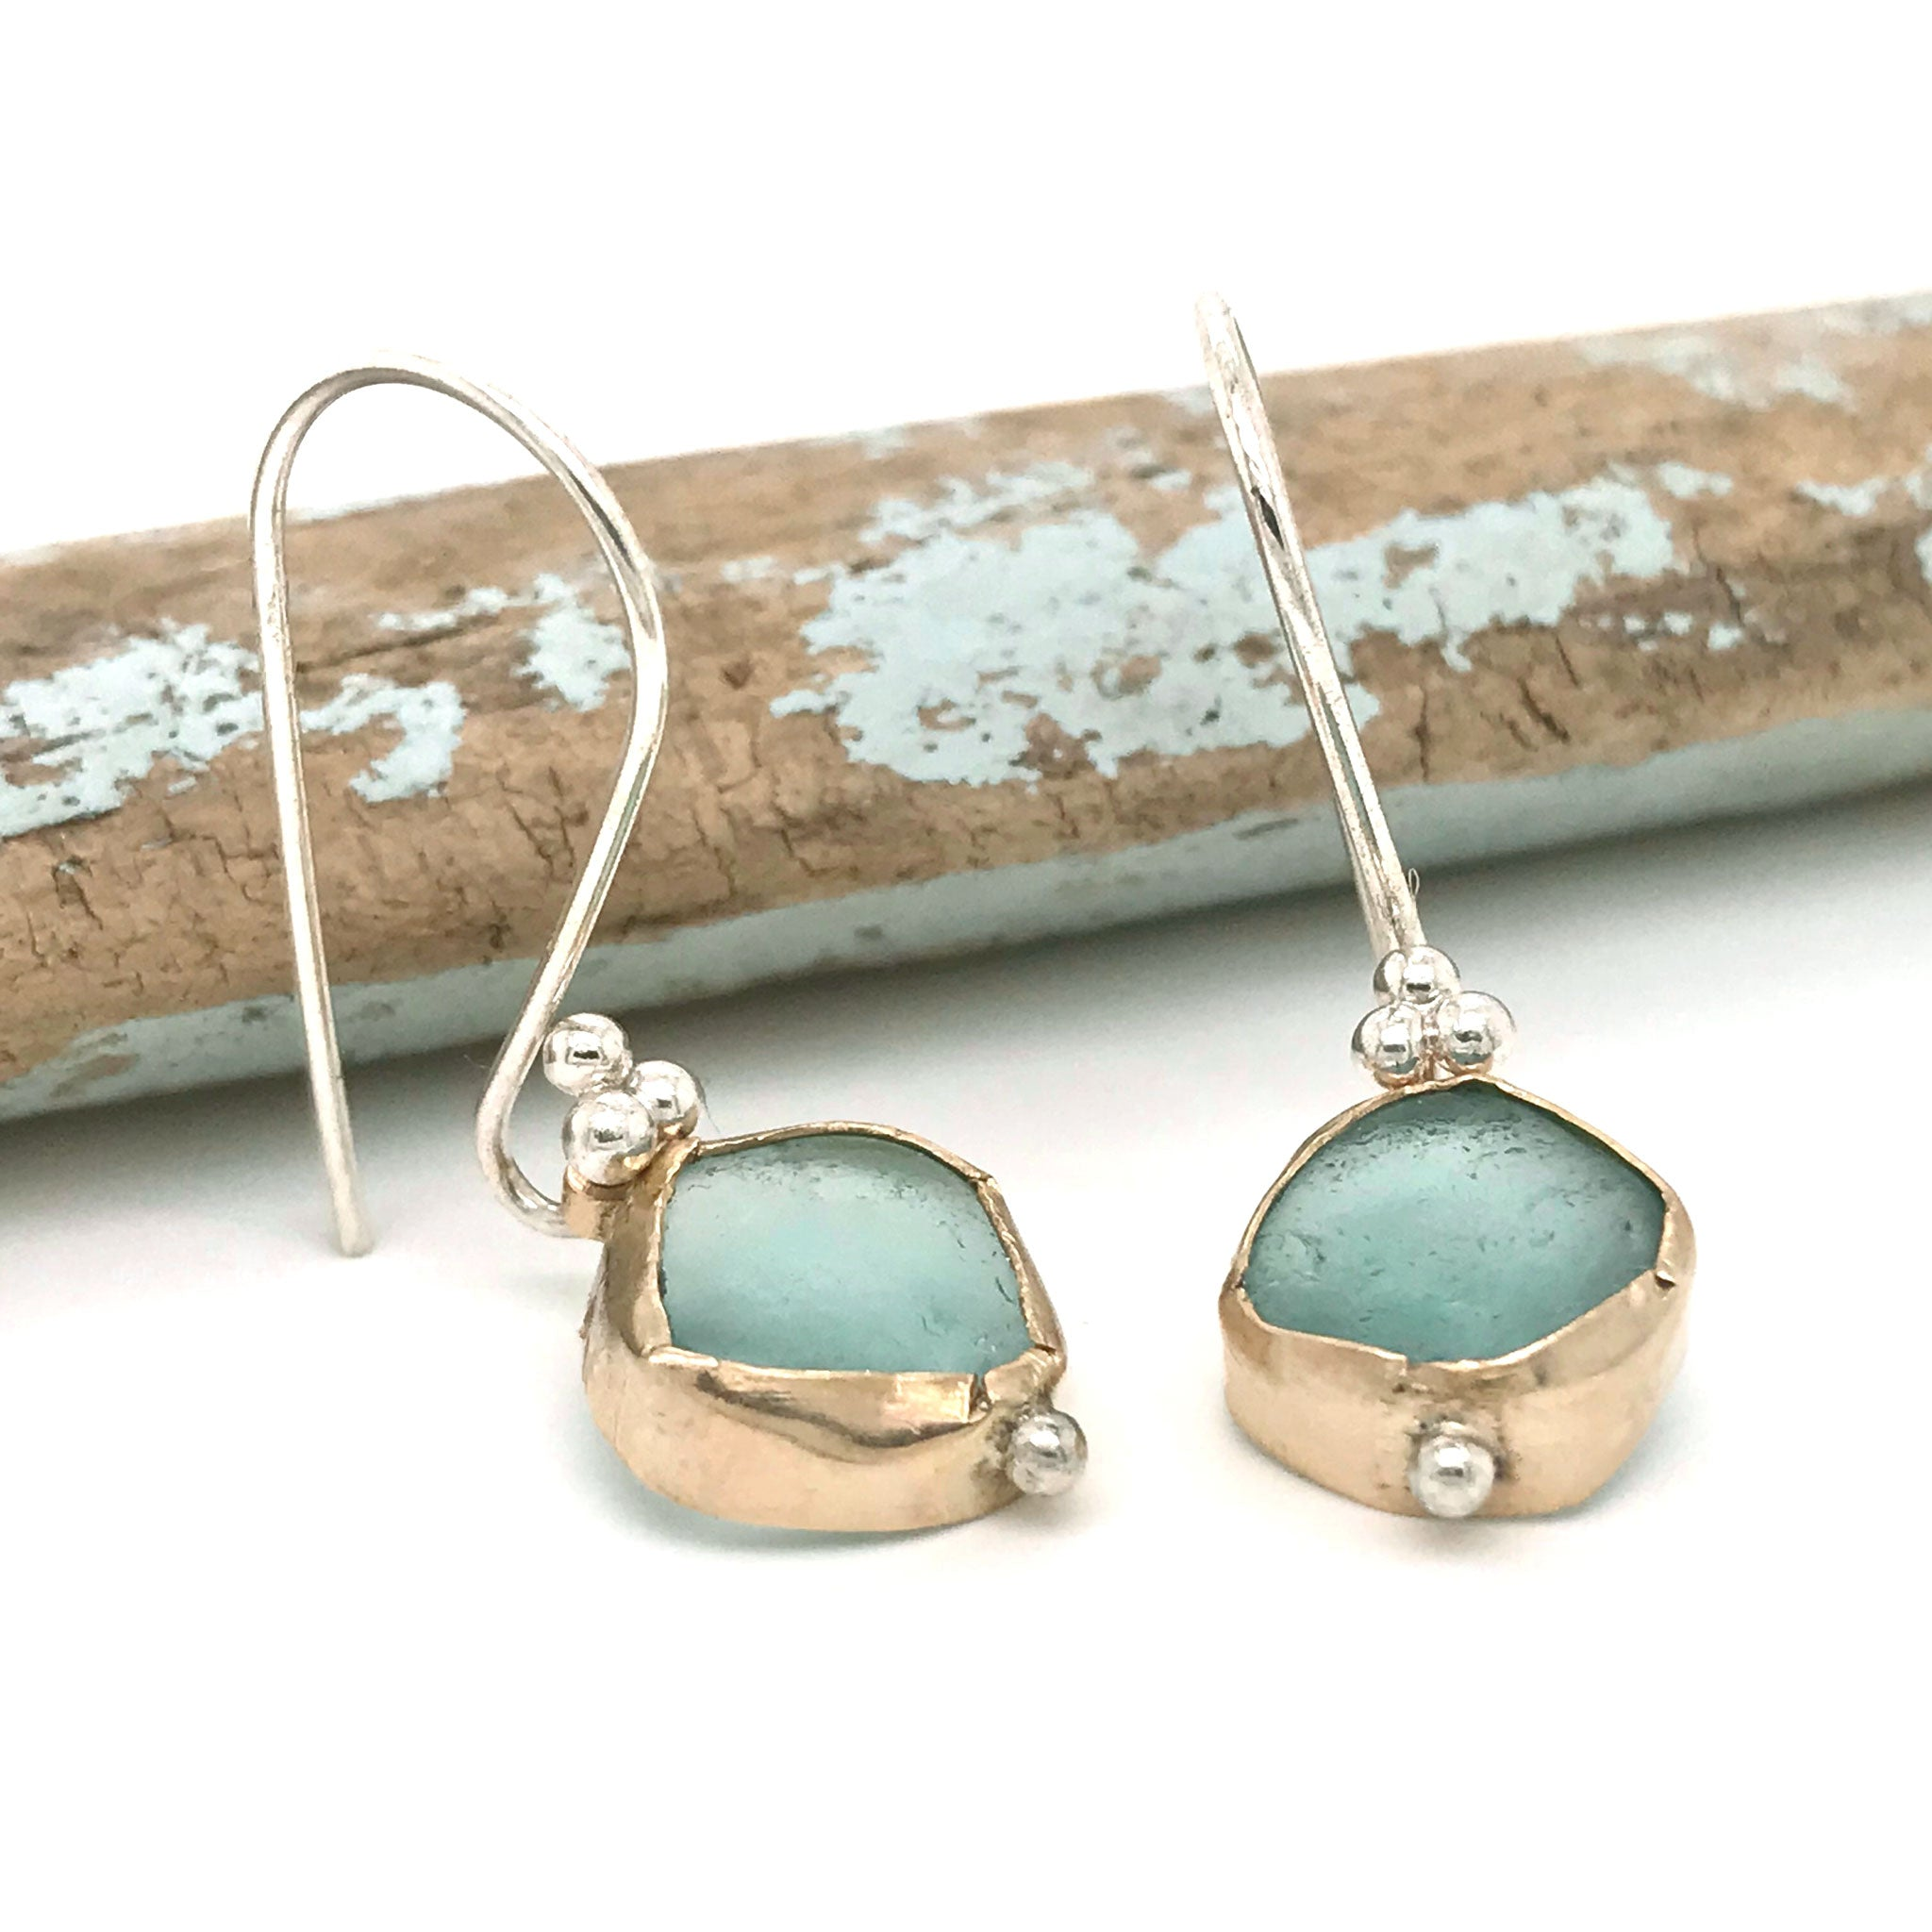 aqua seaglass earrings bezel set in gold hanging on silver hooks Kriket Broadhurst jewellery